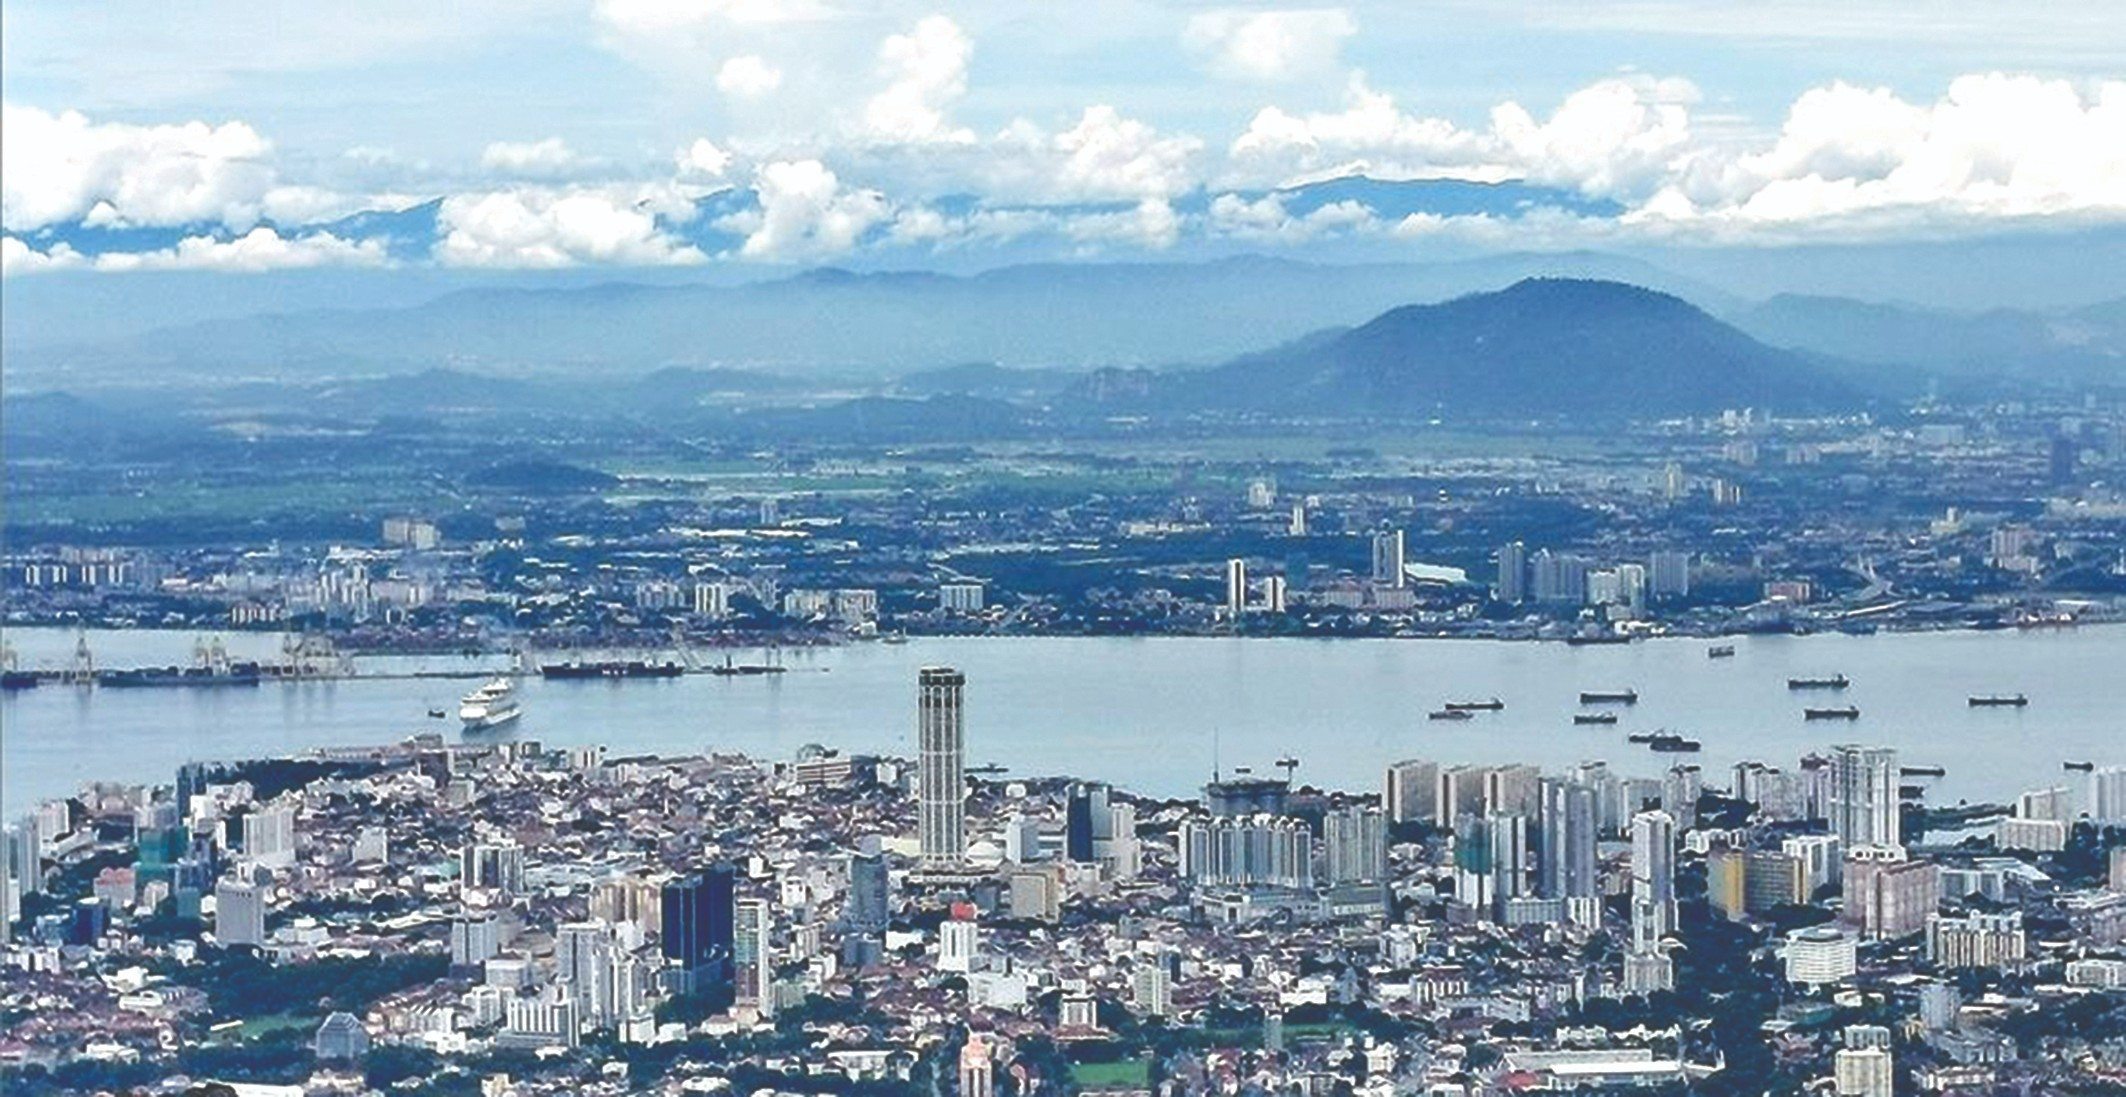 The Gold List 2020 Malaysia Best Destination — Penang